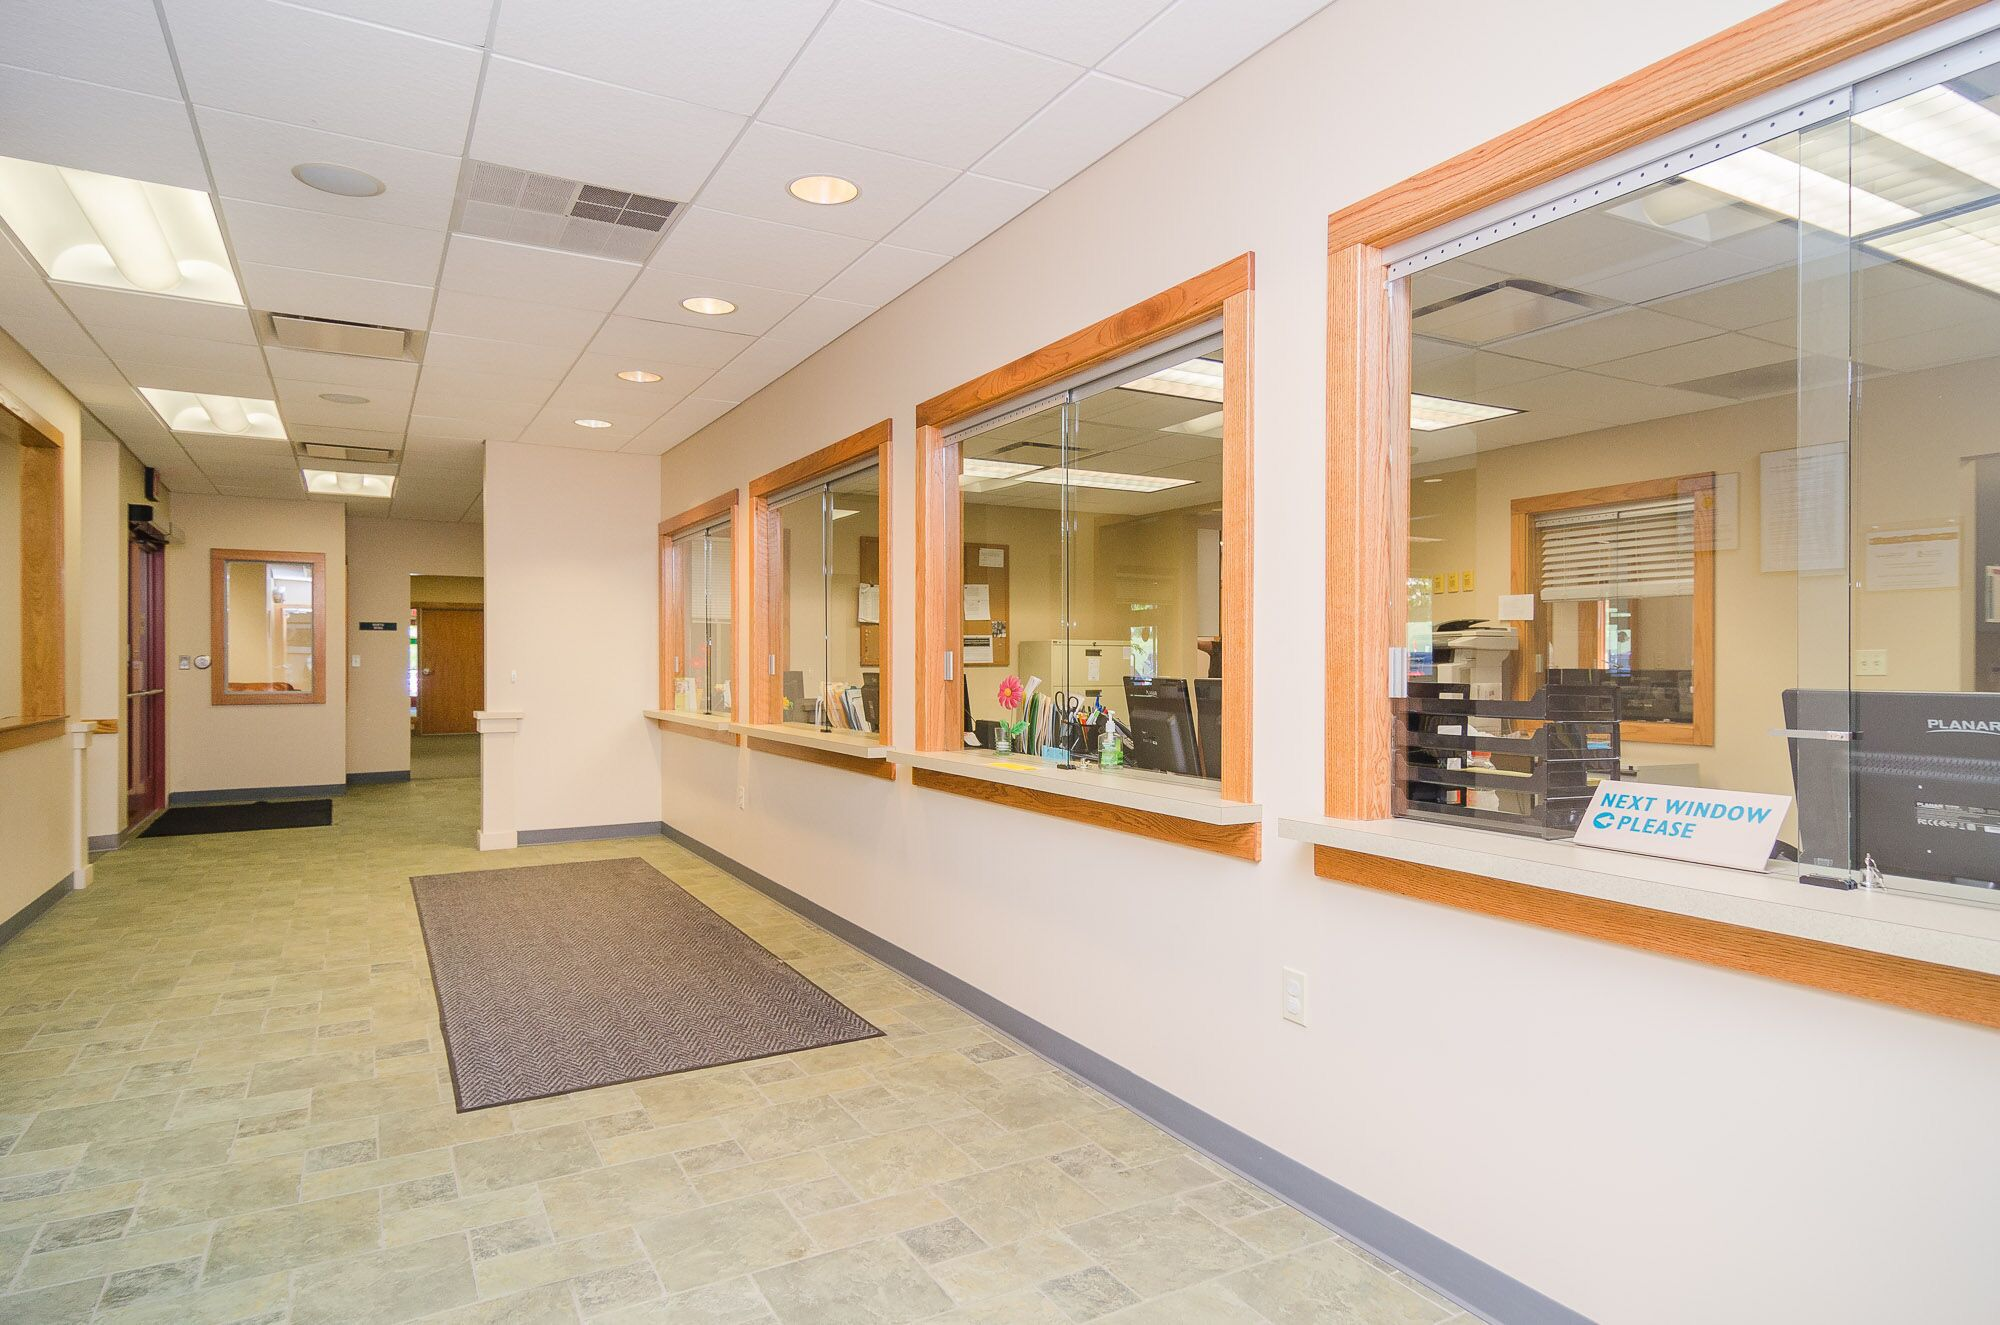 Traverse City Clinic waiting area